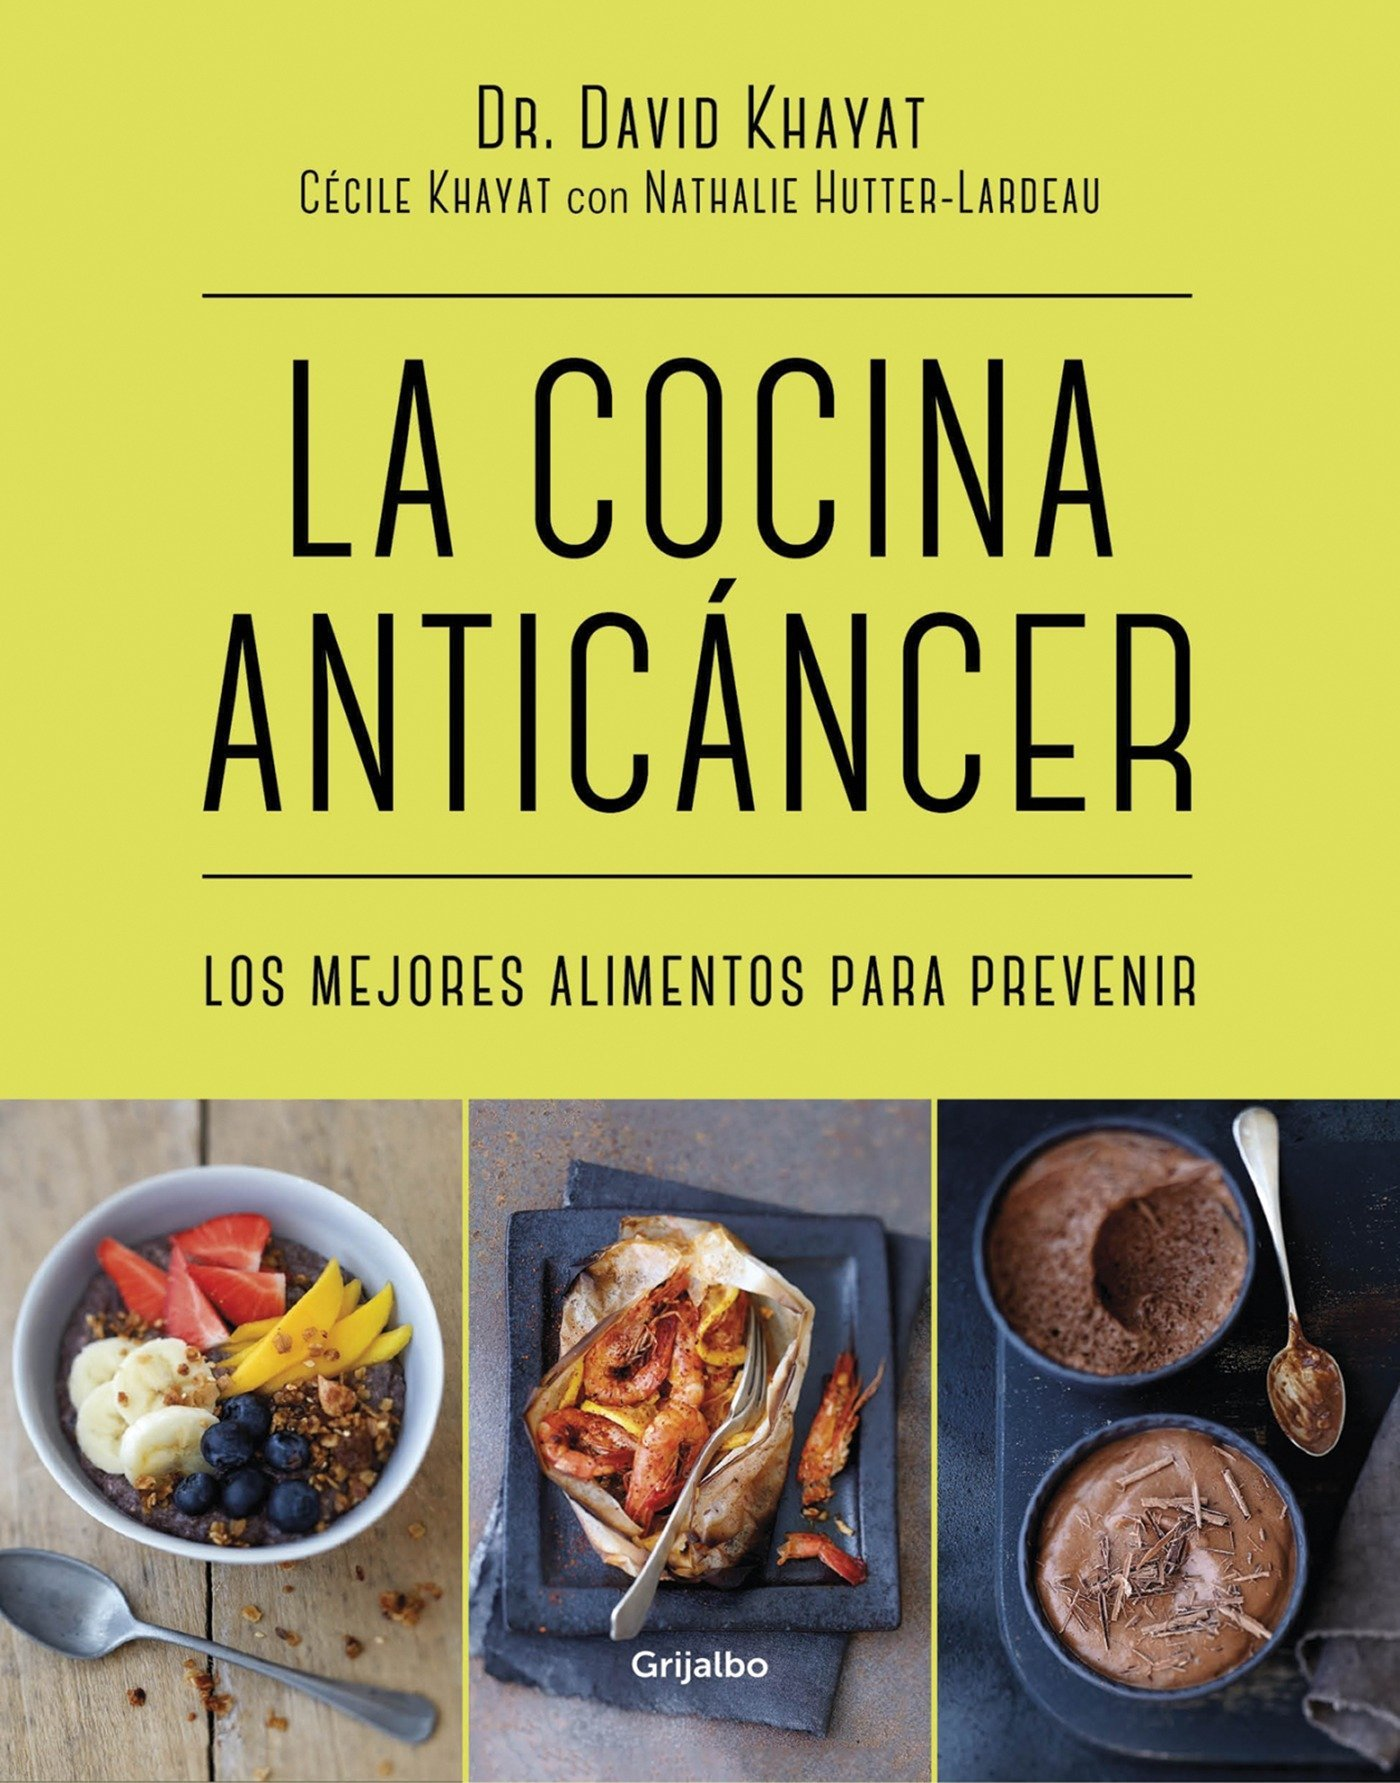 La cocina anticancer / The Anticancer Diet: Reduce Cancer Risk Through the Foods You Eat (Spanish Edition): David Khayat: 9788416449781: Amazon.com: Books